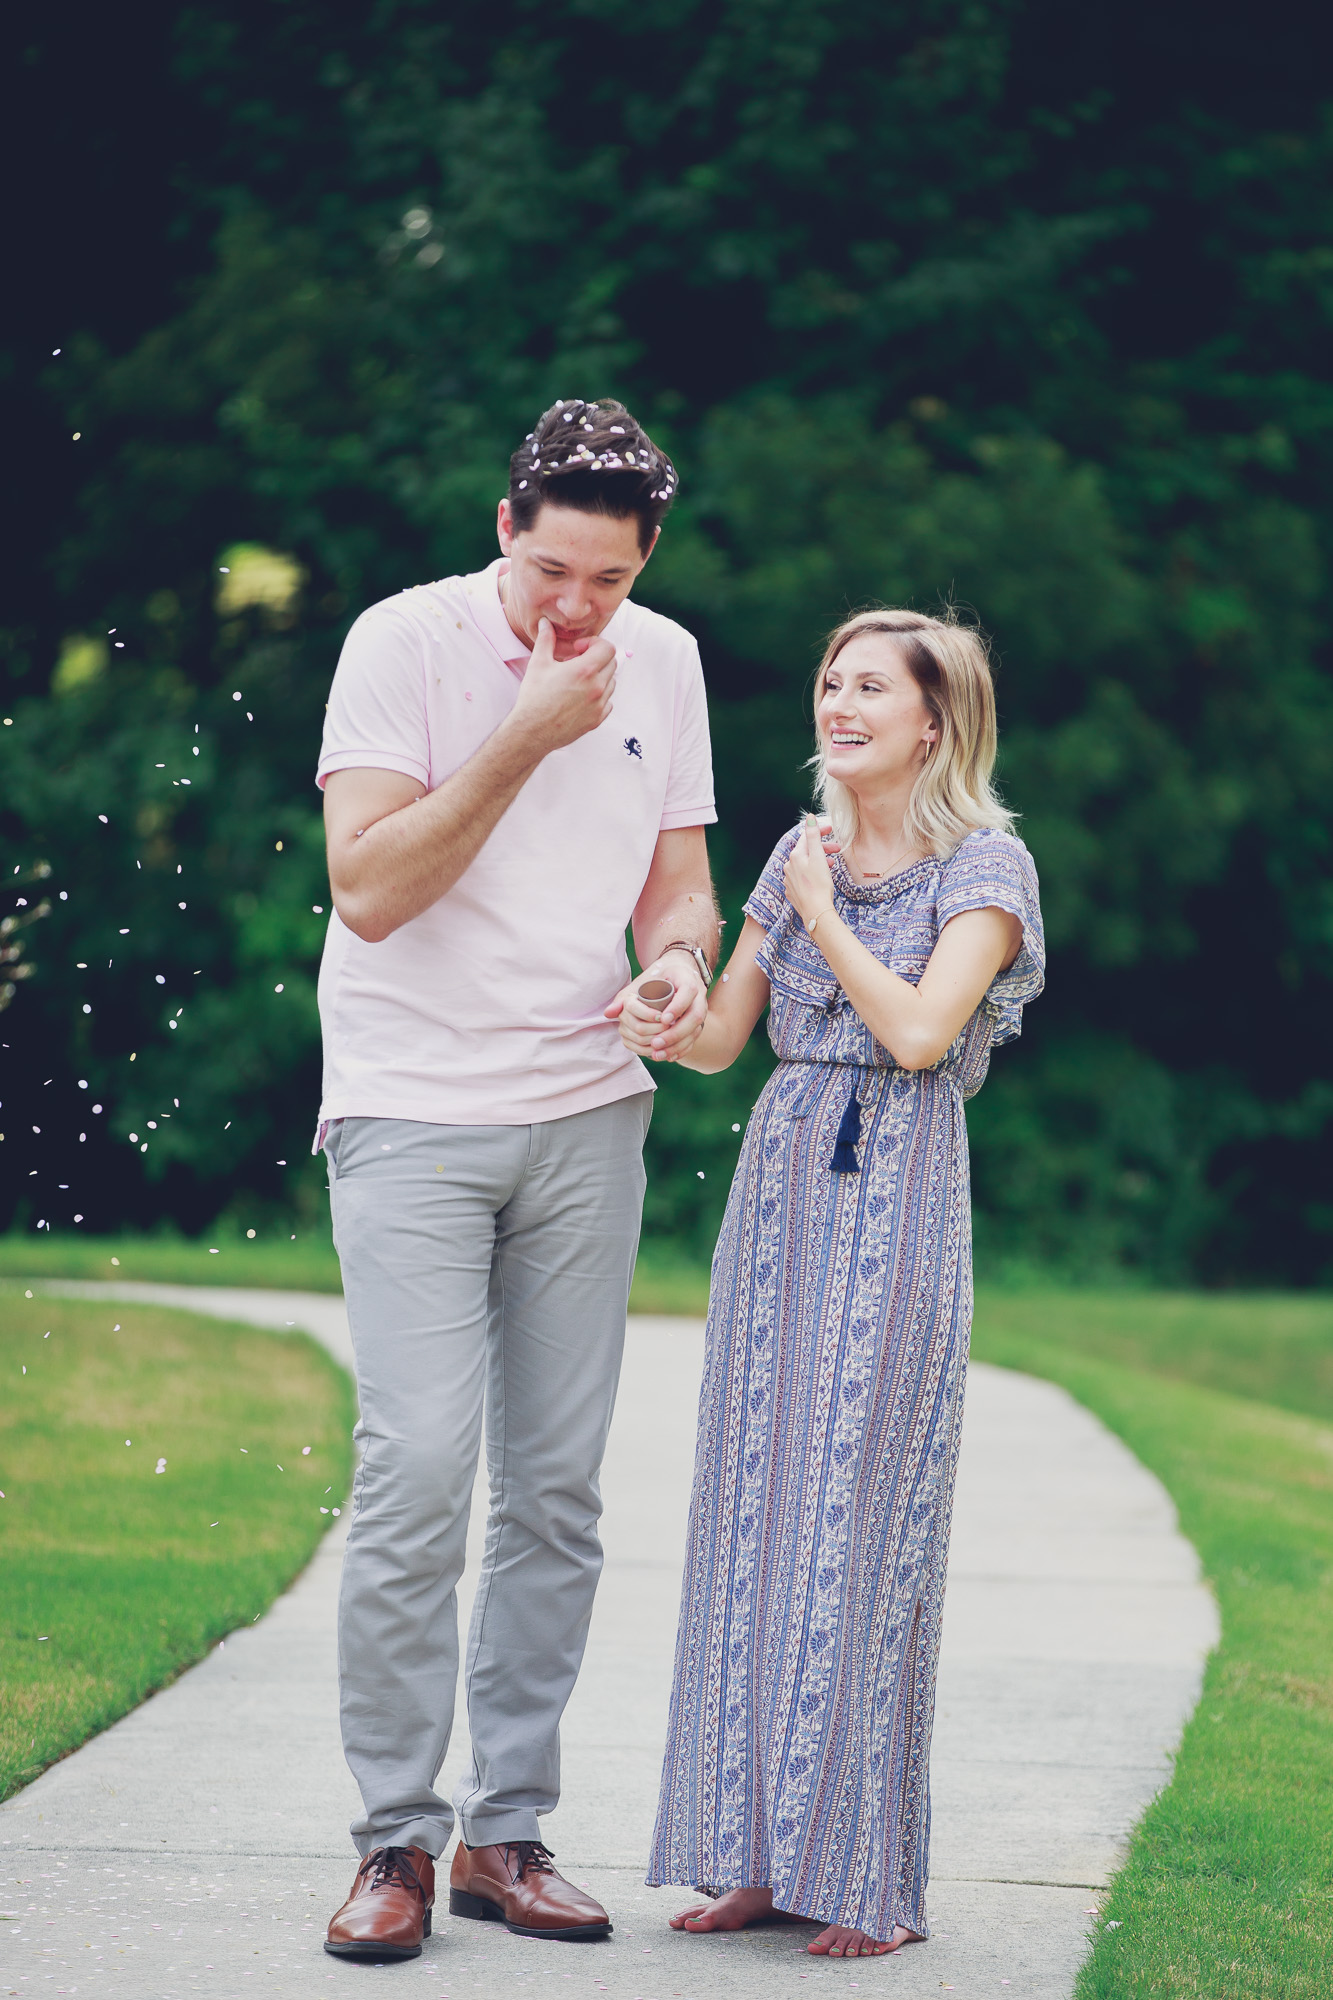 Confetti poppers from gender reveal party on Linn Style by fashion, lifestyle and beauty blogger / vlogger Jessica Linn